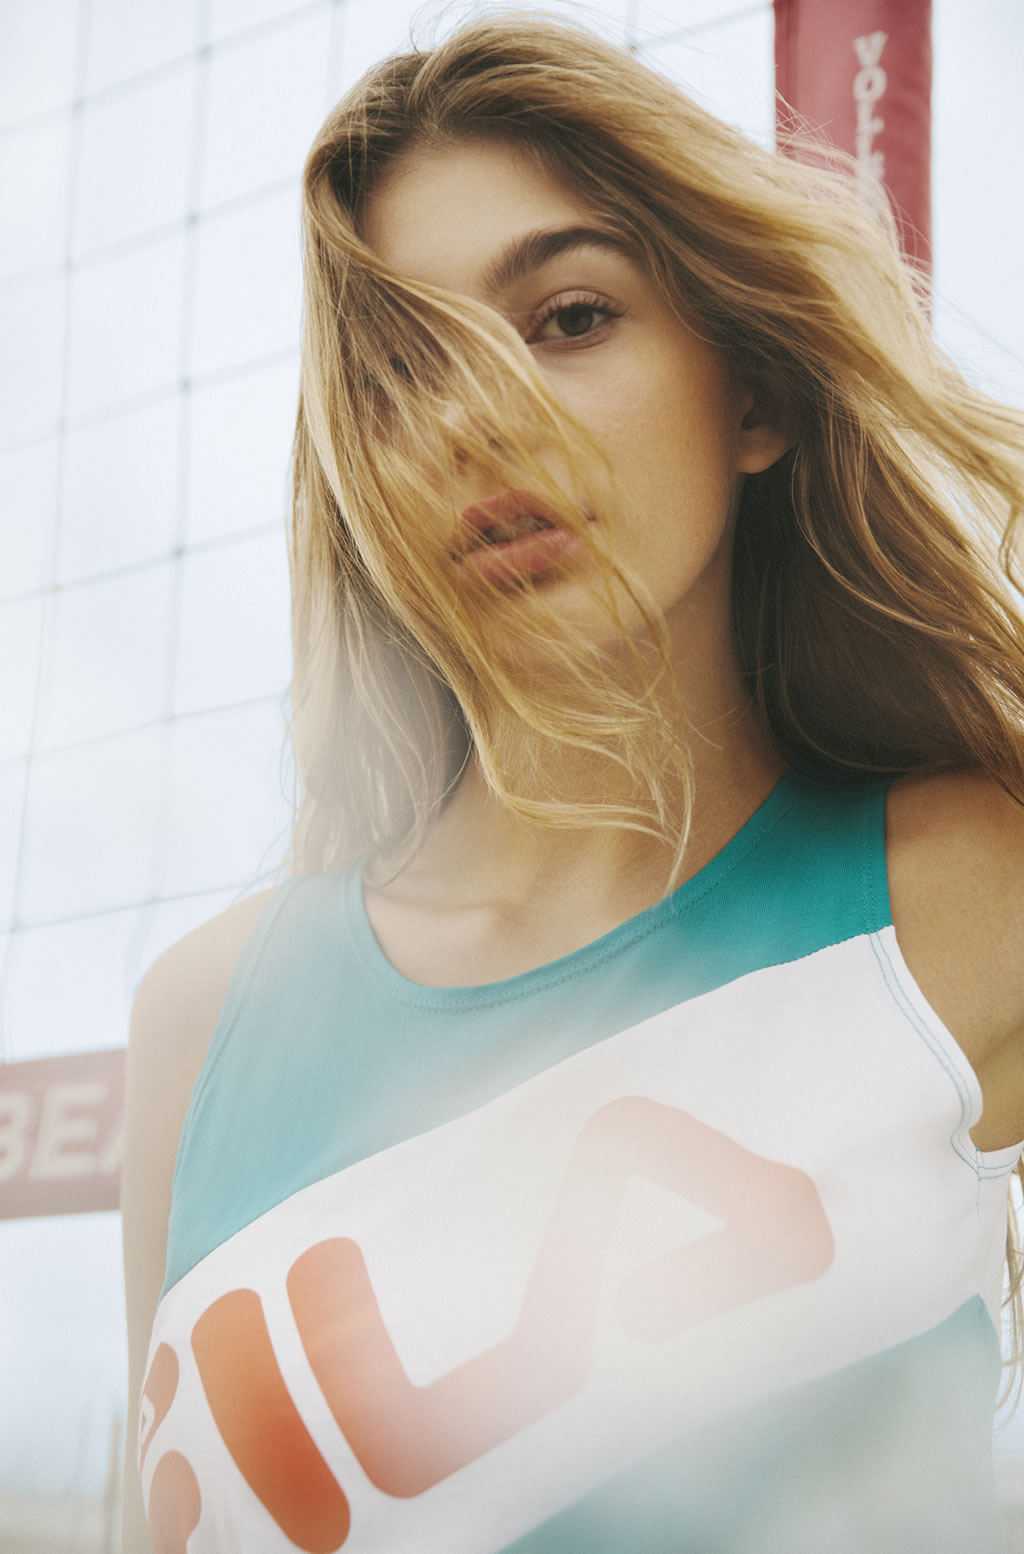 Bra, FILA and Urban Outfitters Women's Capsule